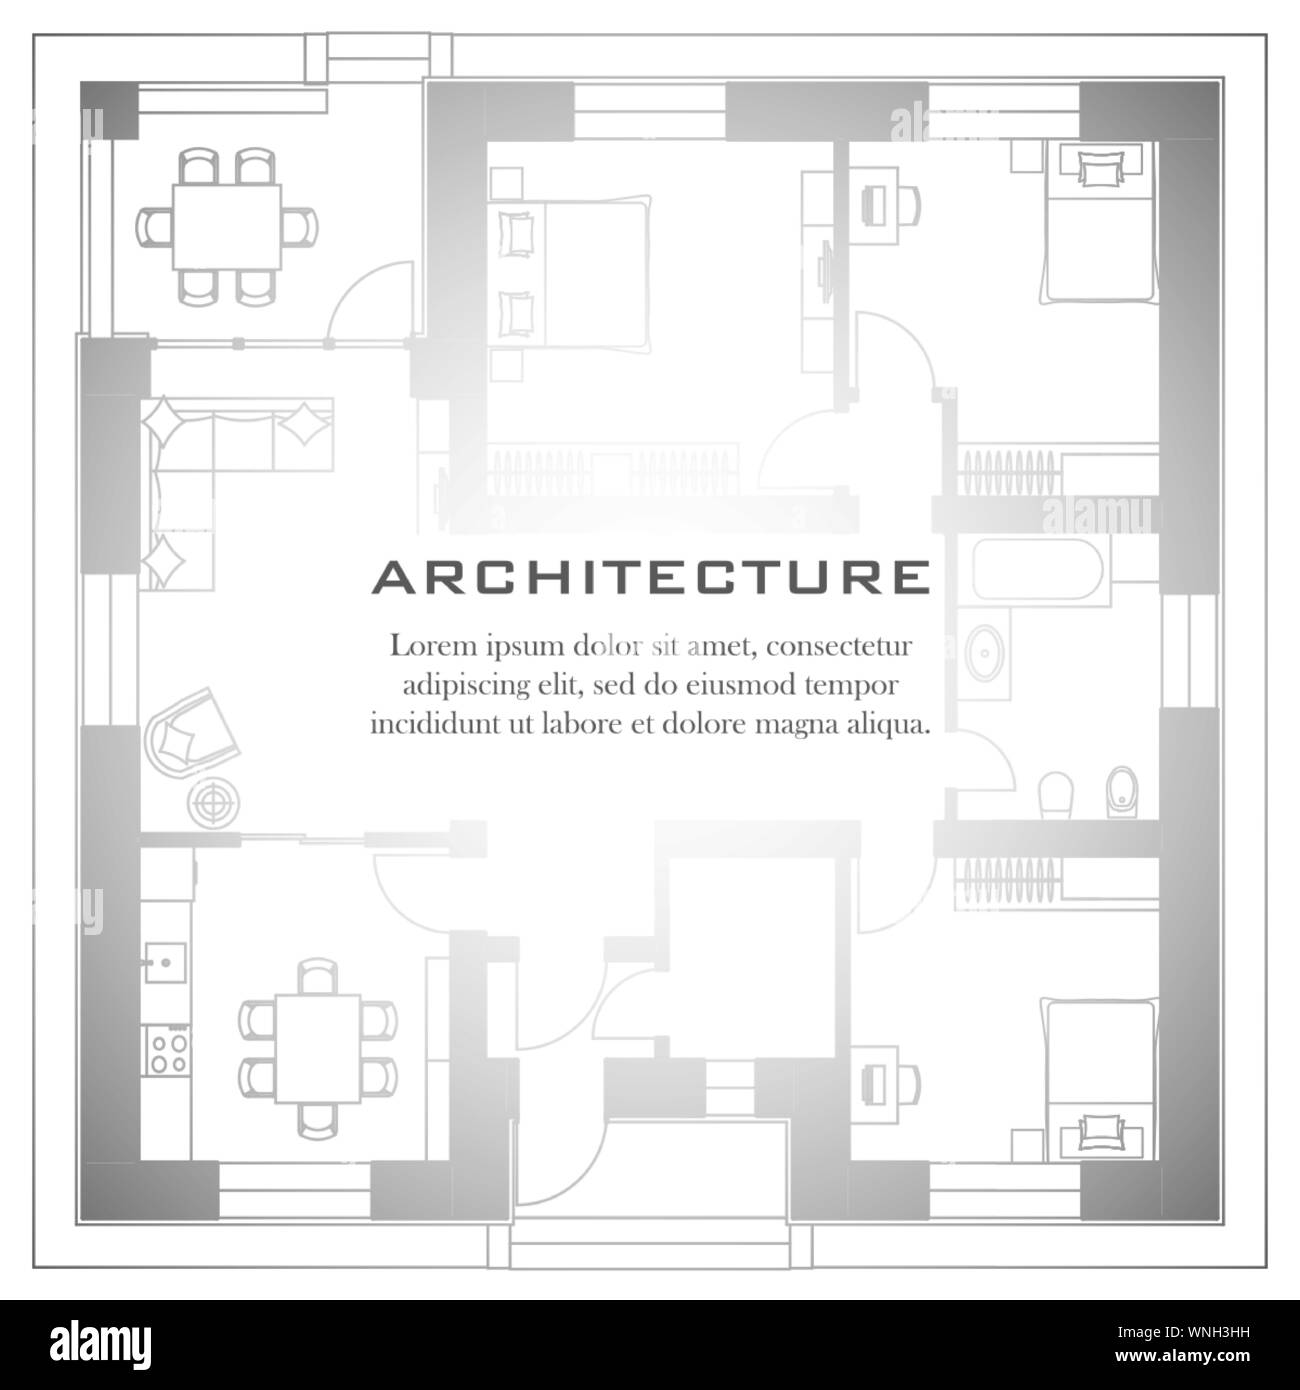 Architectural background. Part of architectural project, architectural plan of a residential building. Black and white vector illustration EPS10 Stock Vector